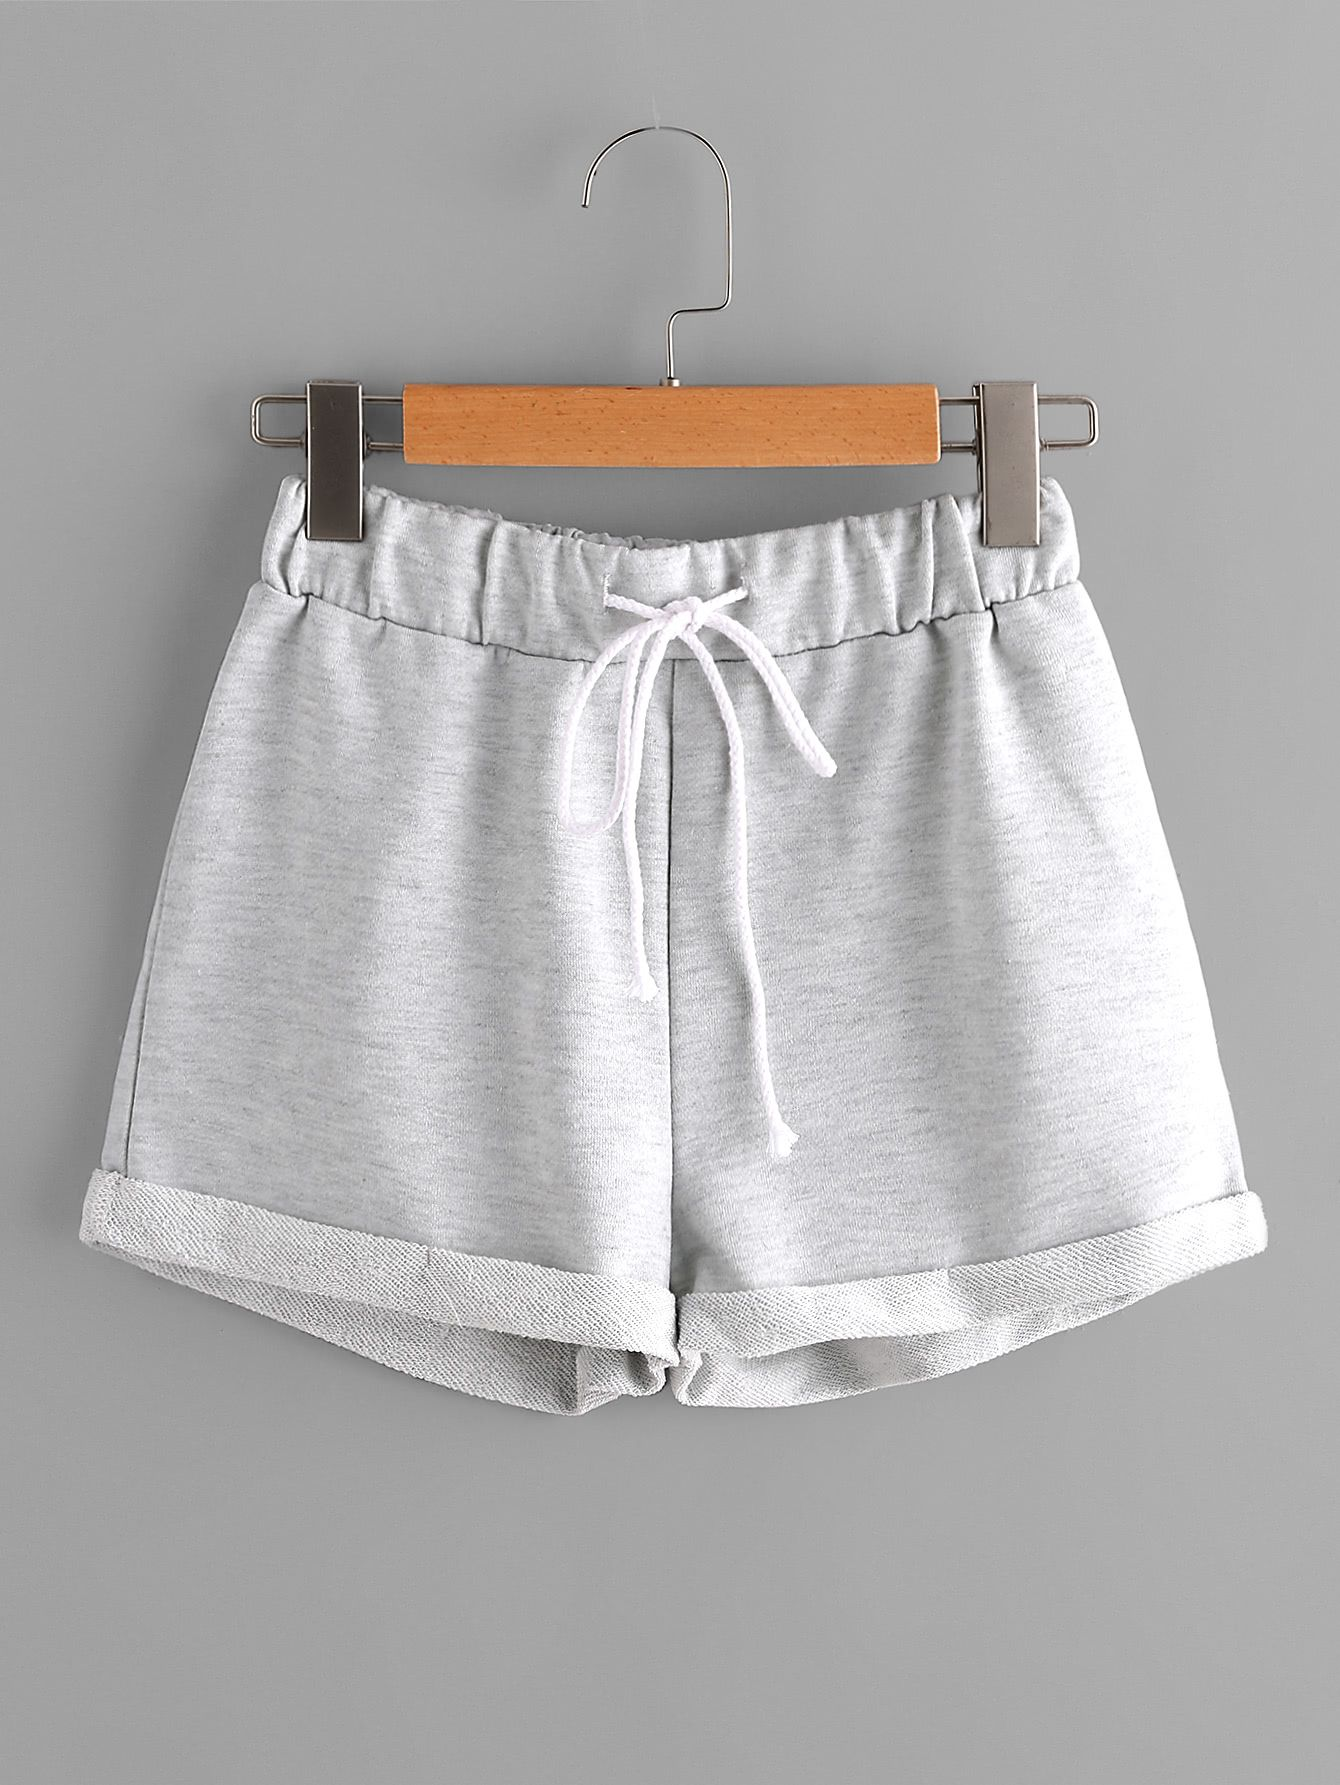 5039fd93b Heathered Knit Cuffed Shorts in 2019 | Wish list | Pinterest ...